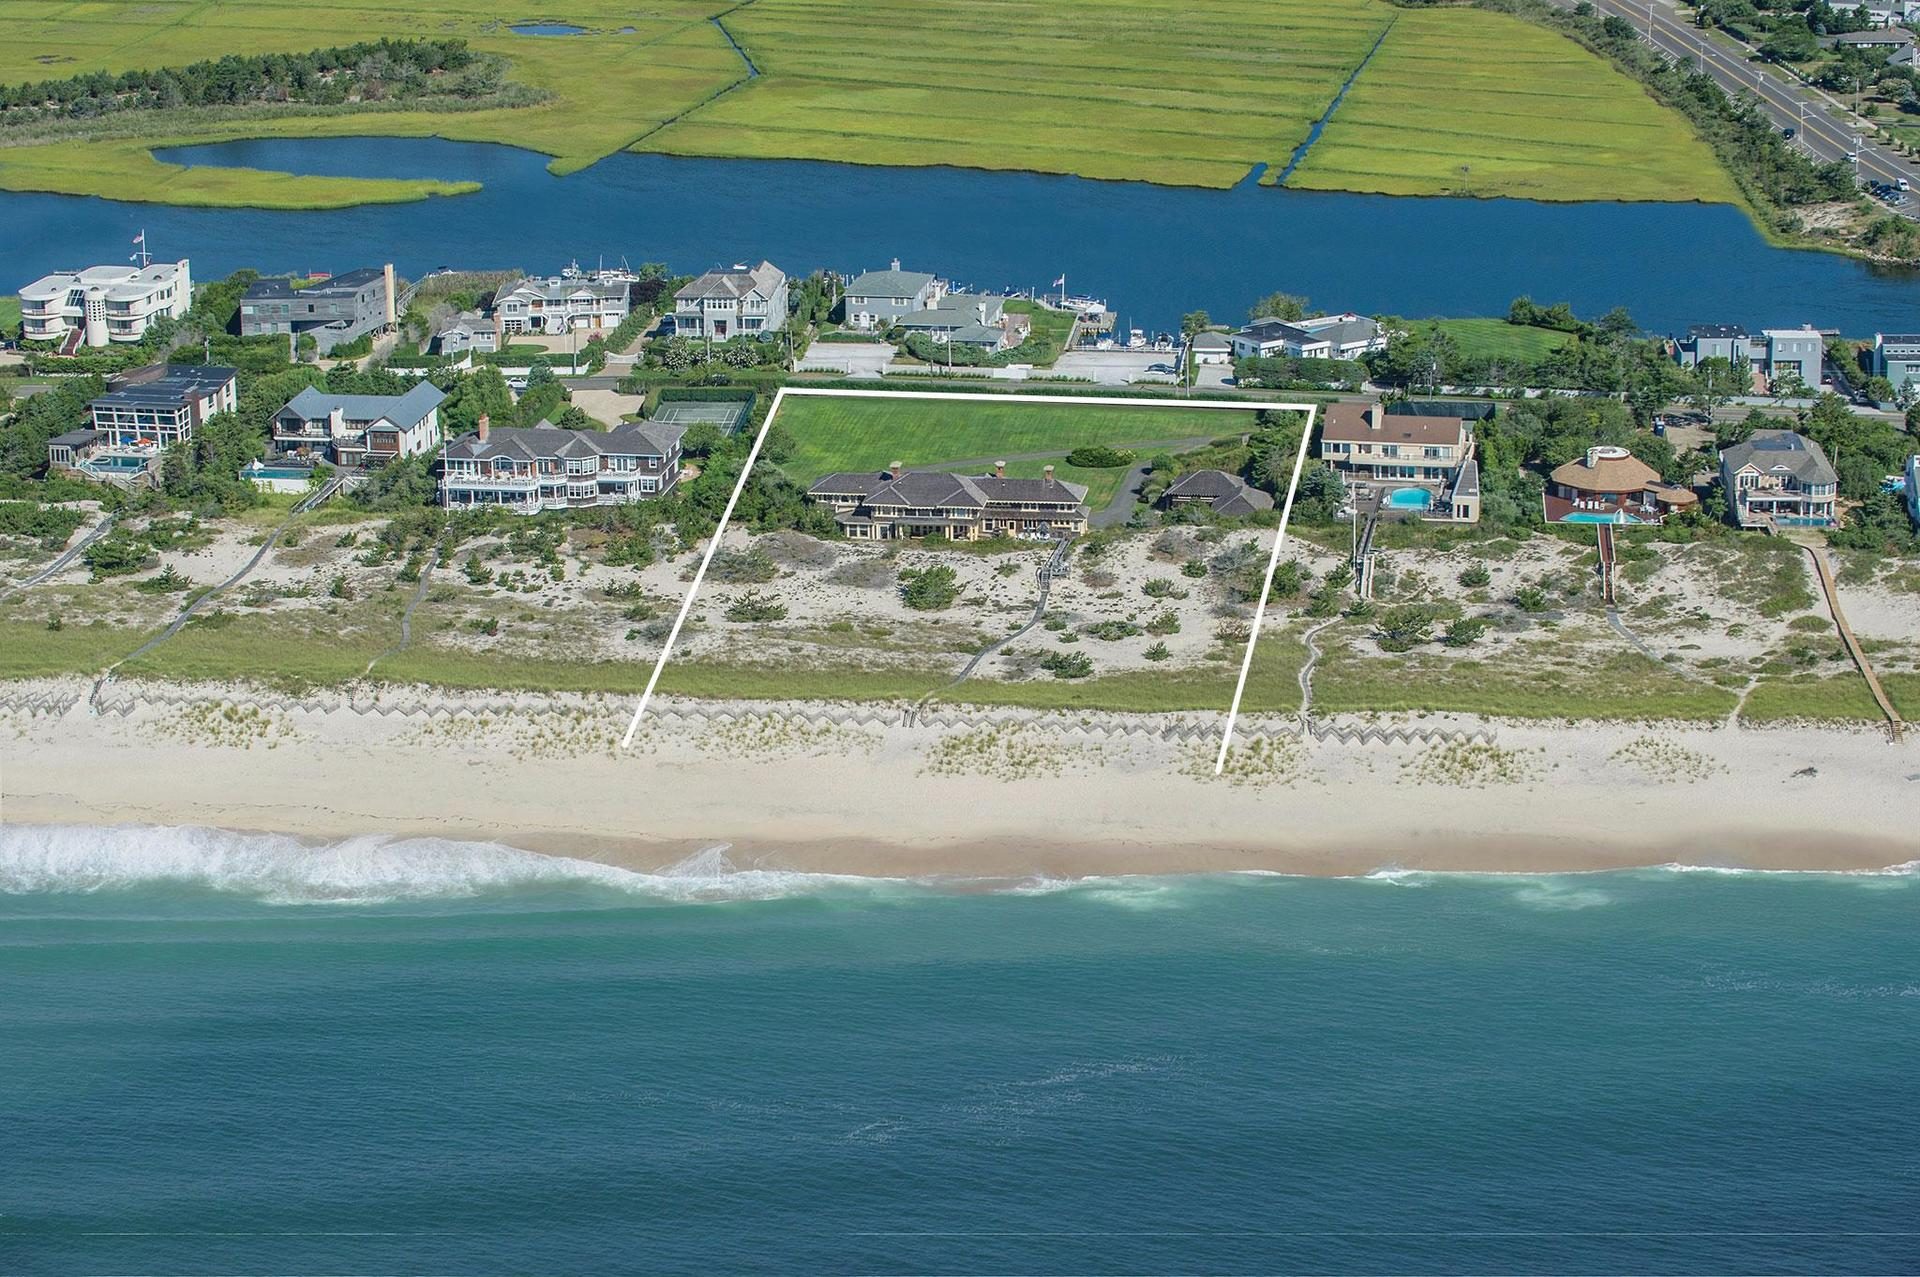 Single Family Home for Sale at Distinctive Shingle Style Oceanfront Estate 119 Dune Road, Westhampton Beach, New York